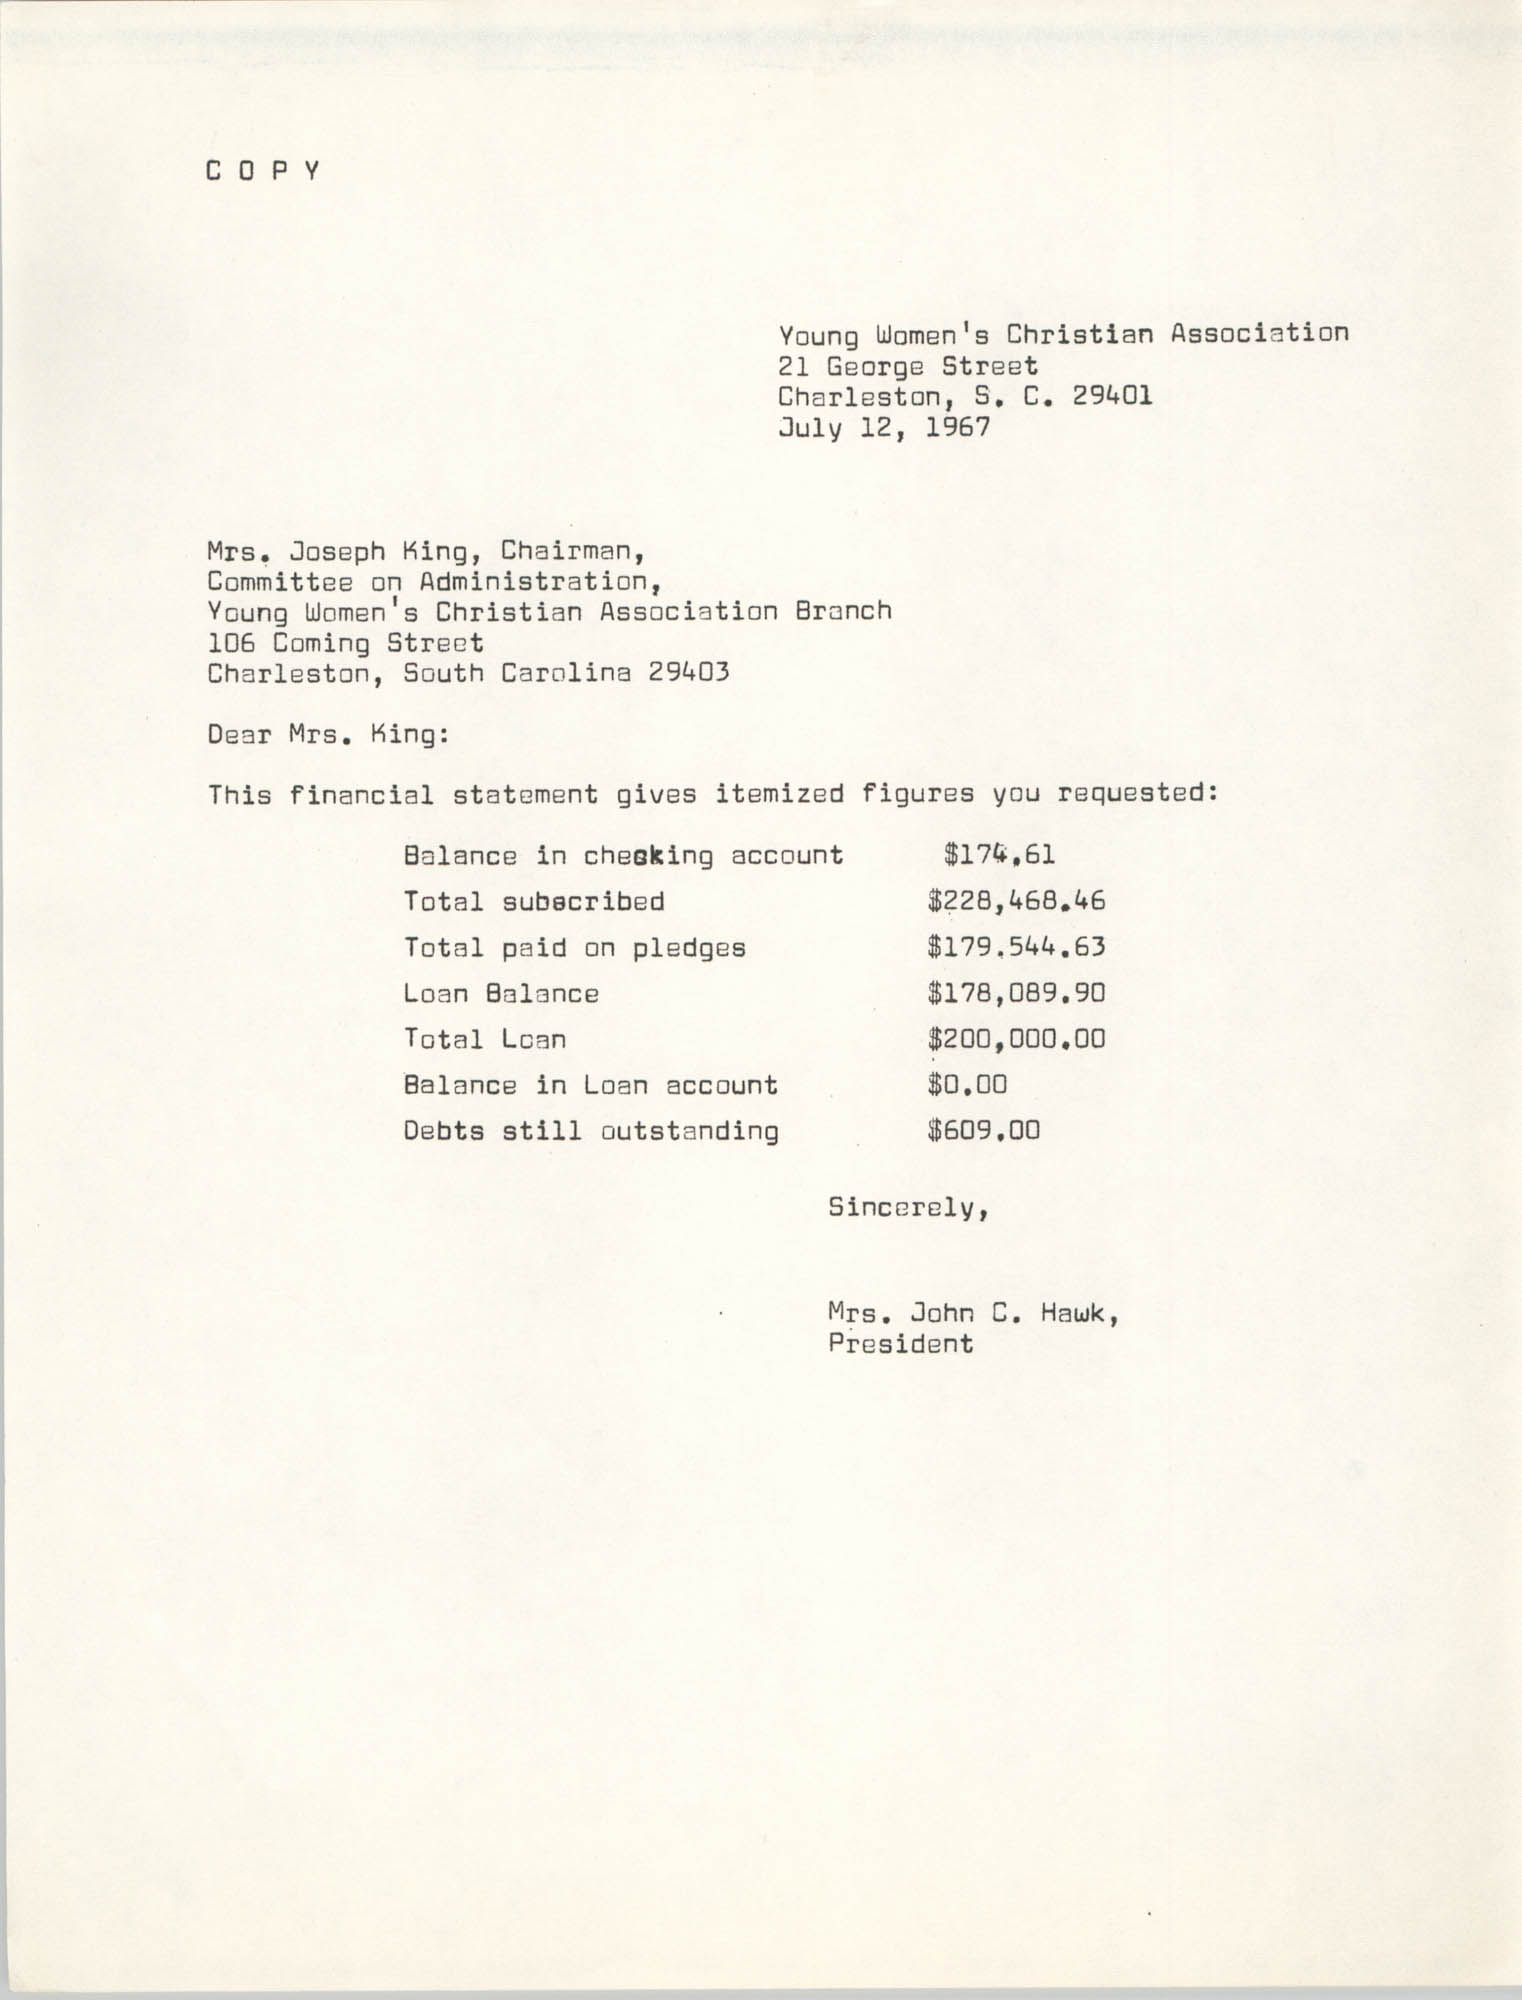 Letter from John C. Hawk to Joseph King, July 12, 1967